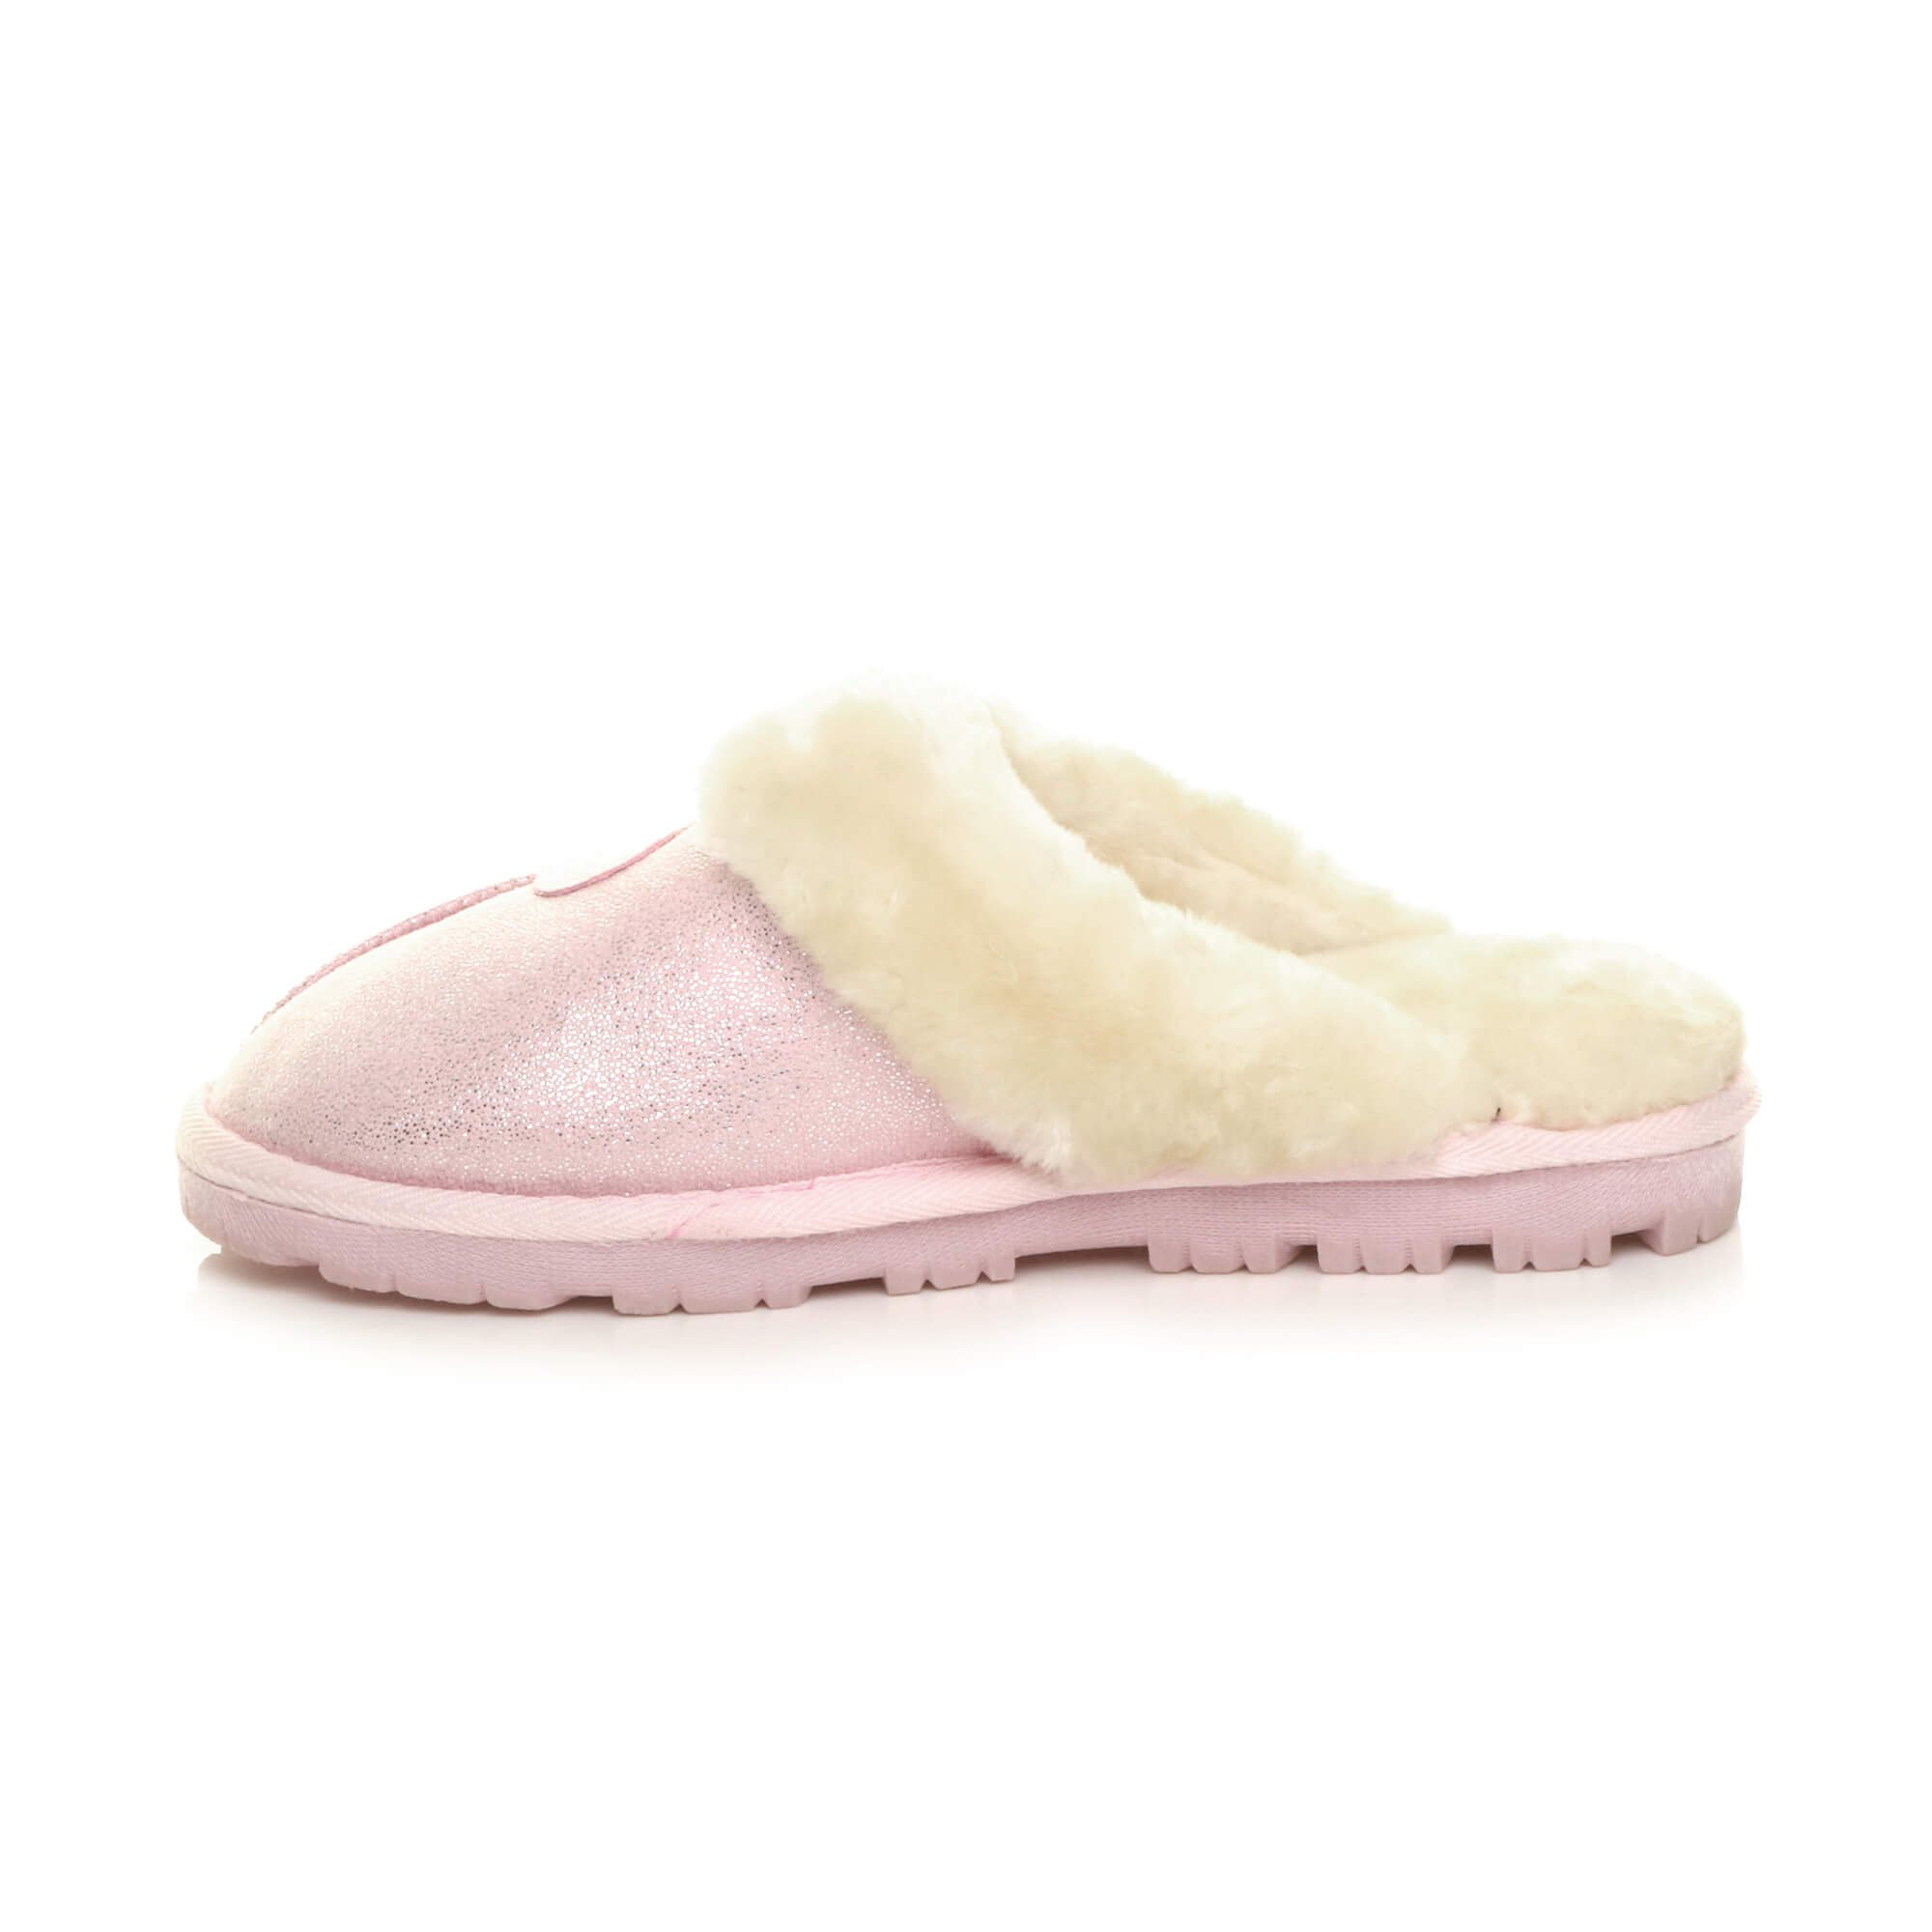 WOMENS-LADIES-FLAT-FUR-LINED-COMFORTABLE-WINTER-MULES-SLIPPERS-HOUSE-SHOES-SIZE thumbnail 81